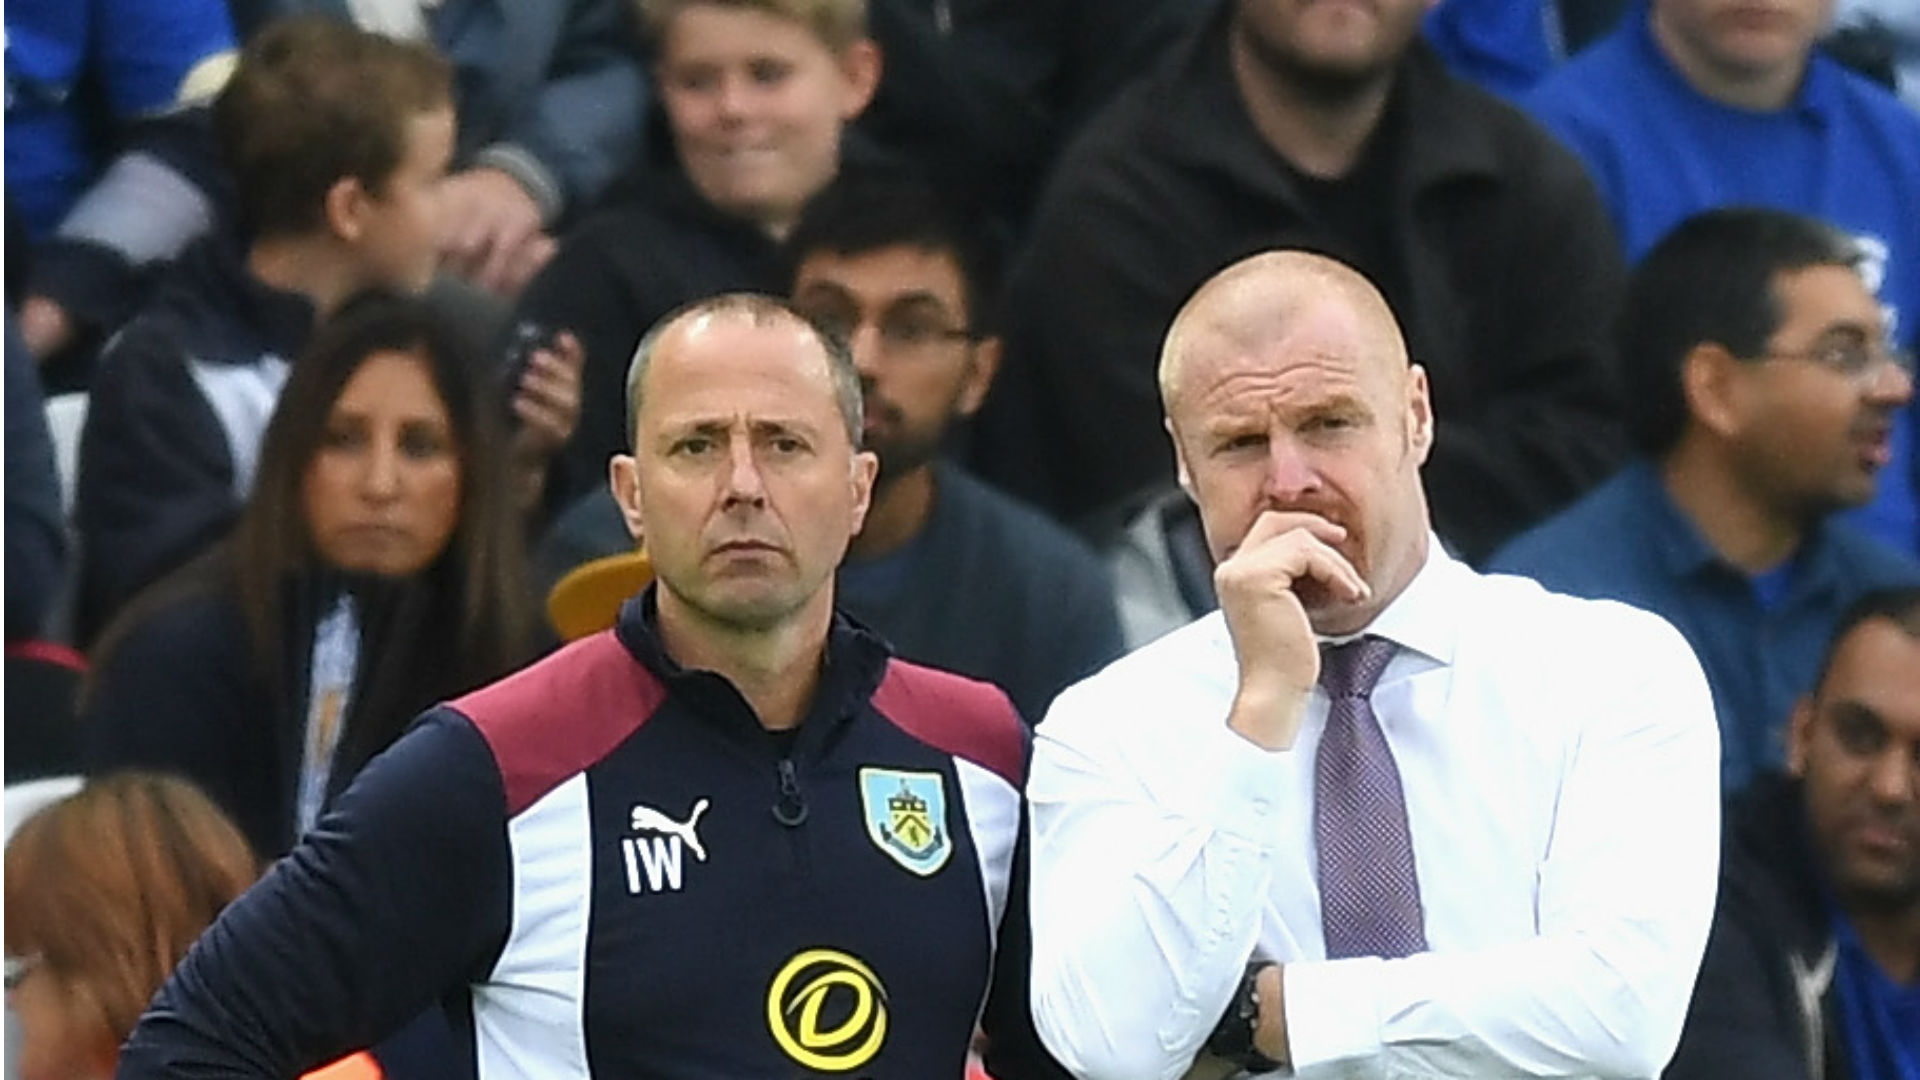 Burnley - Premier League Football - 17 September 2016